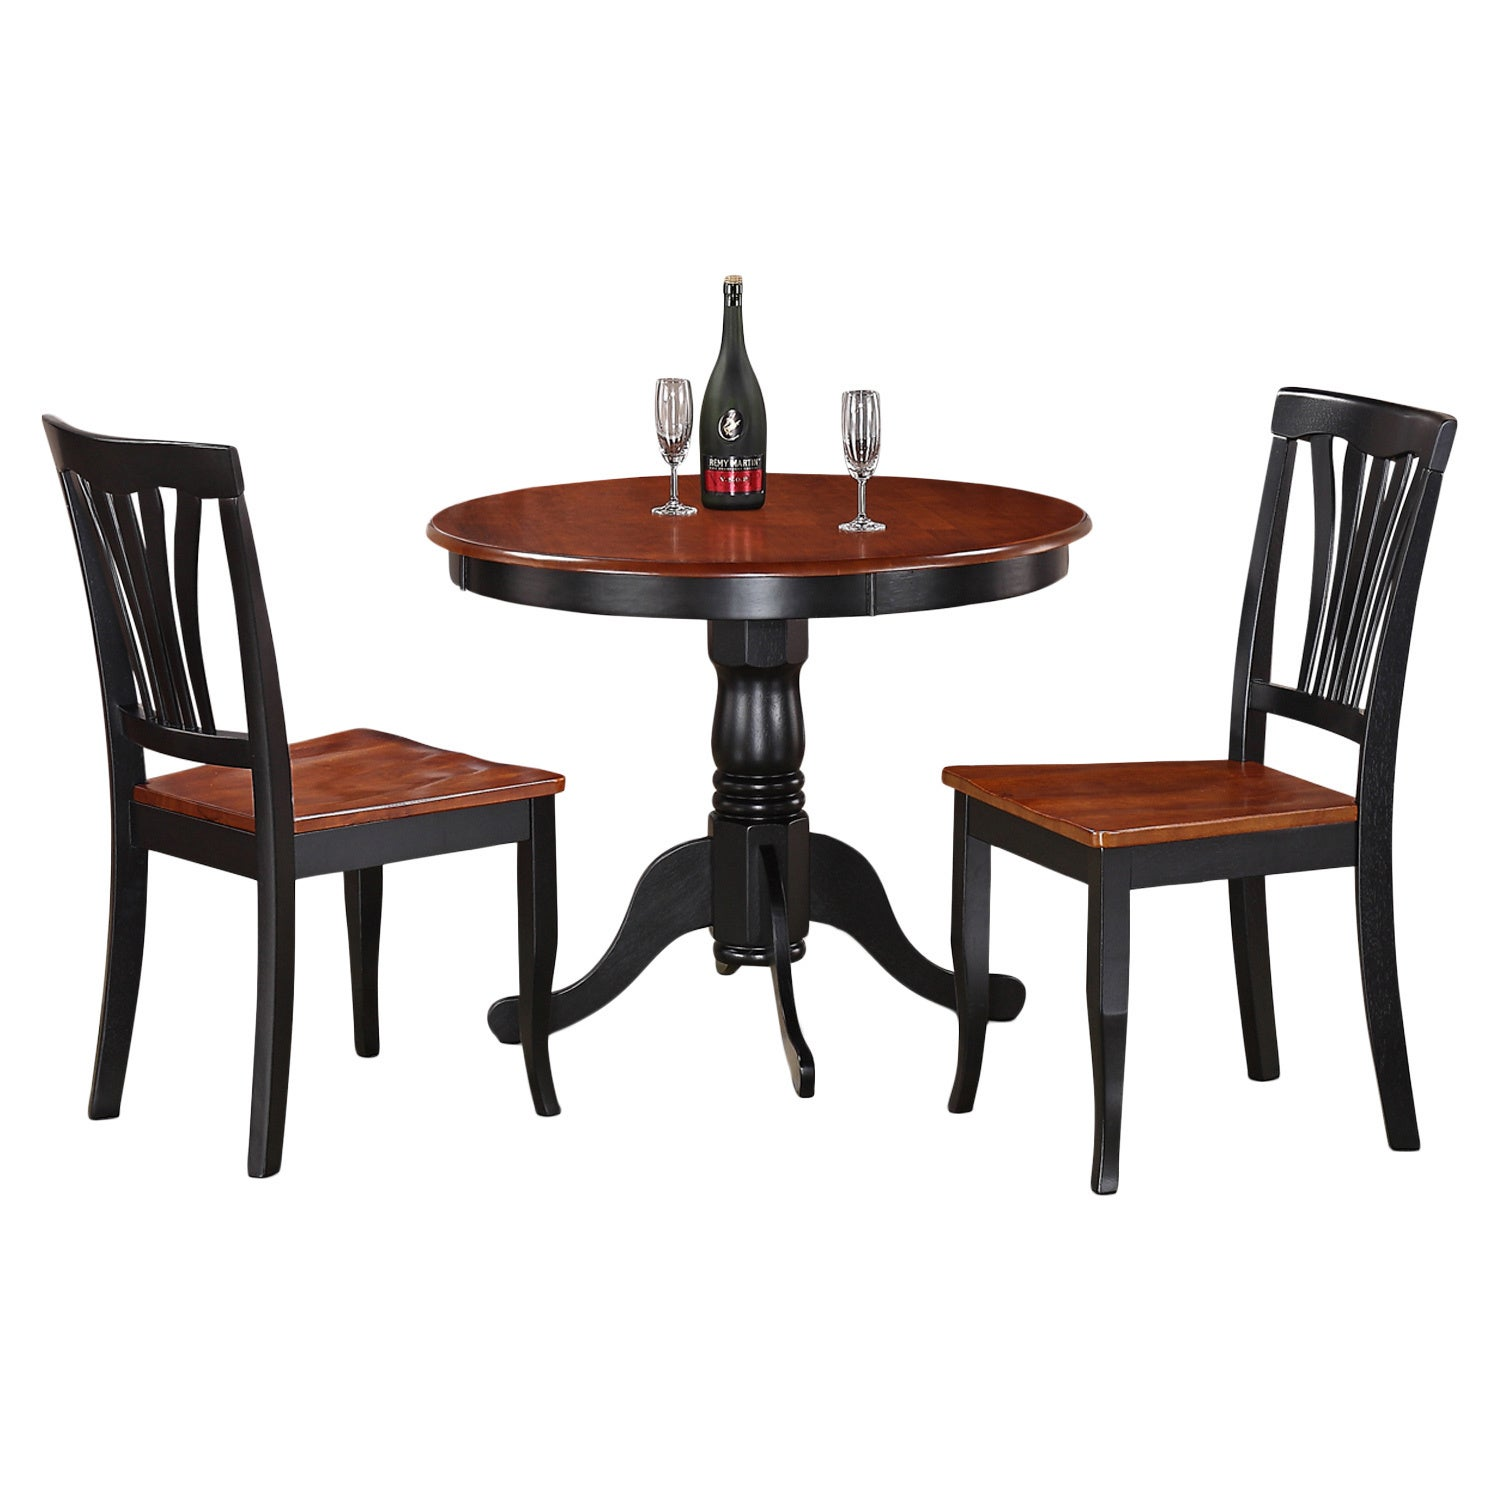 Shop 3 Piece Kitchen Nook Dining Set Small Kitchen Table And 2